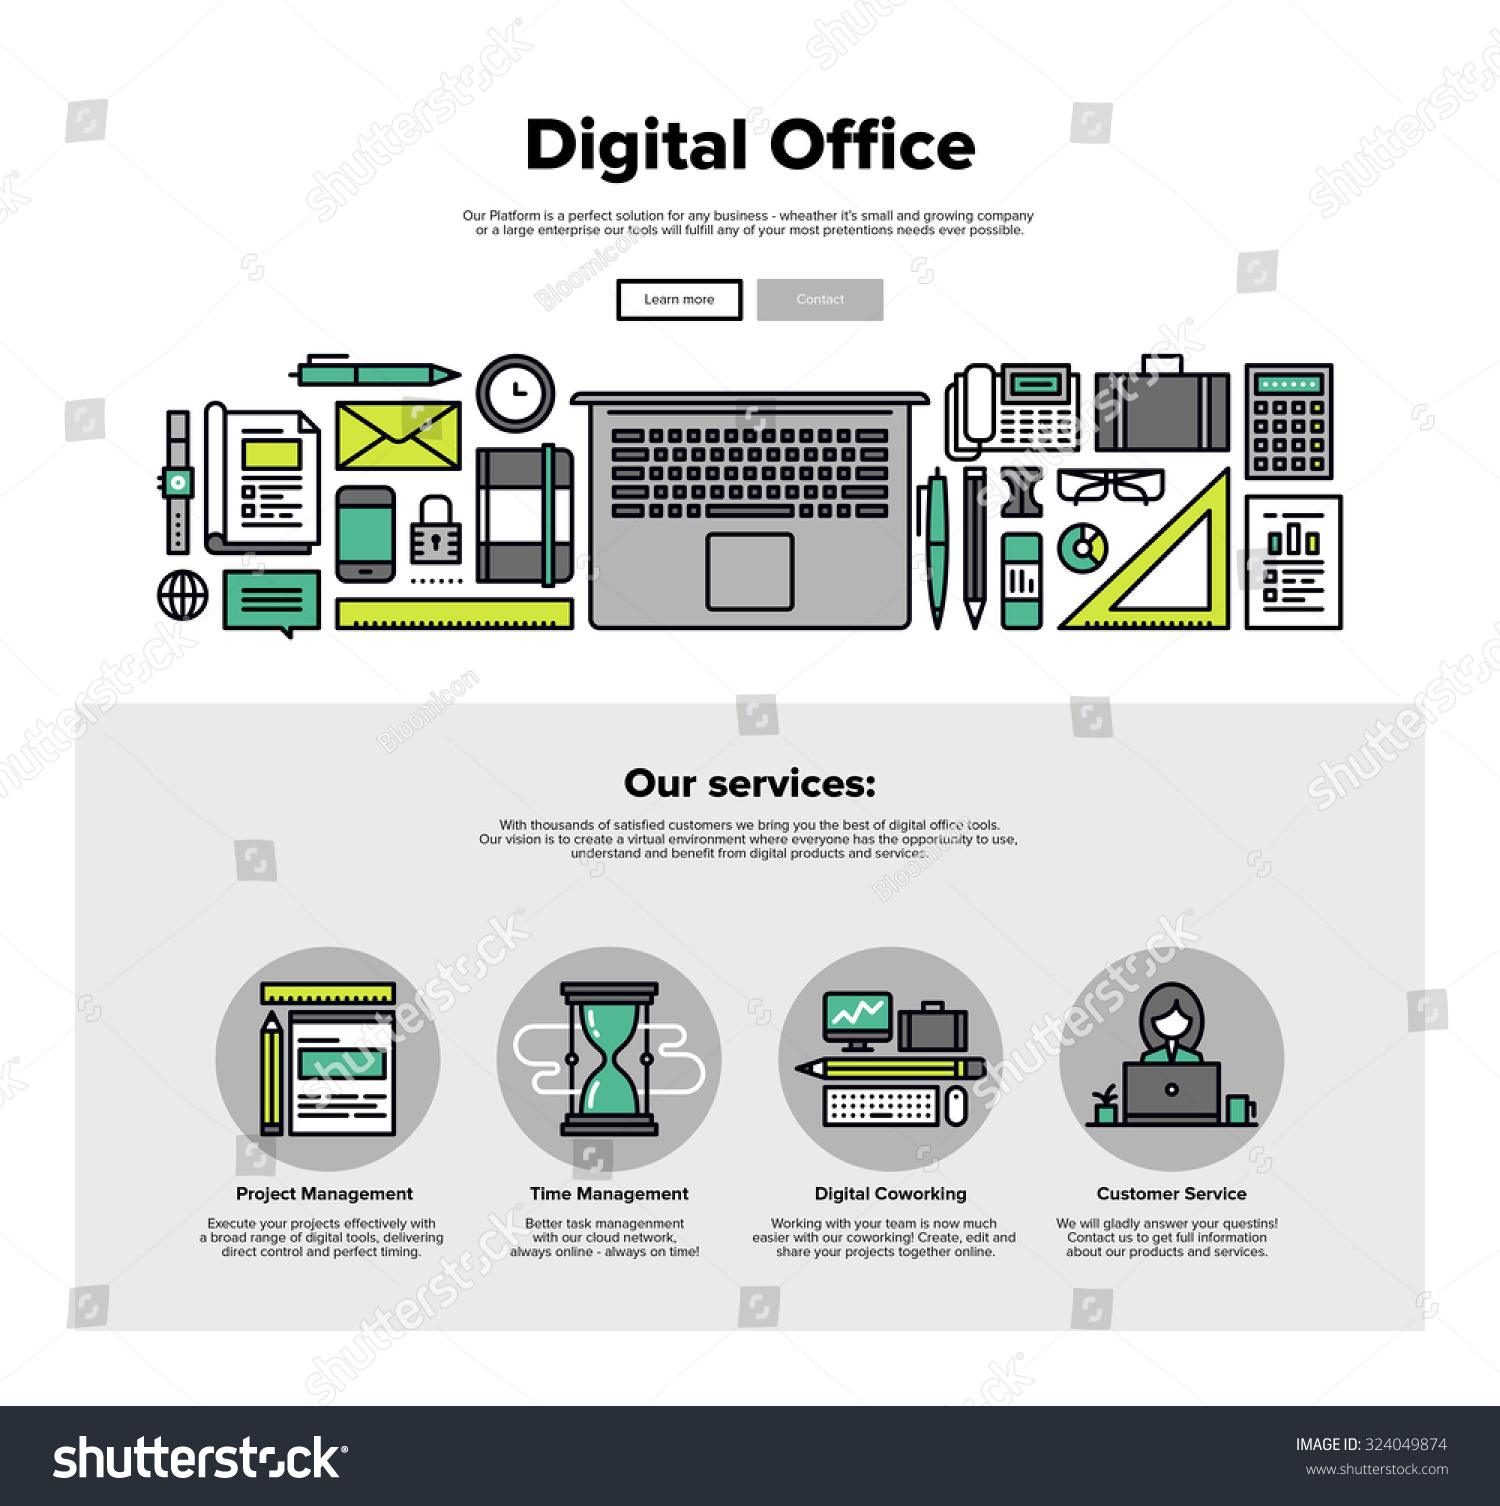 with thin line icons of digital office, project management service ...: http://www.shutterstock.com/pic-324049874/stock-vector-one-page-web-design-template-with-thin-line-icons-of-digital-office-project-management-service.html